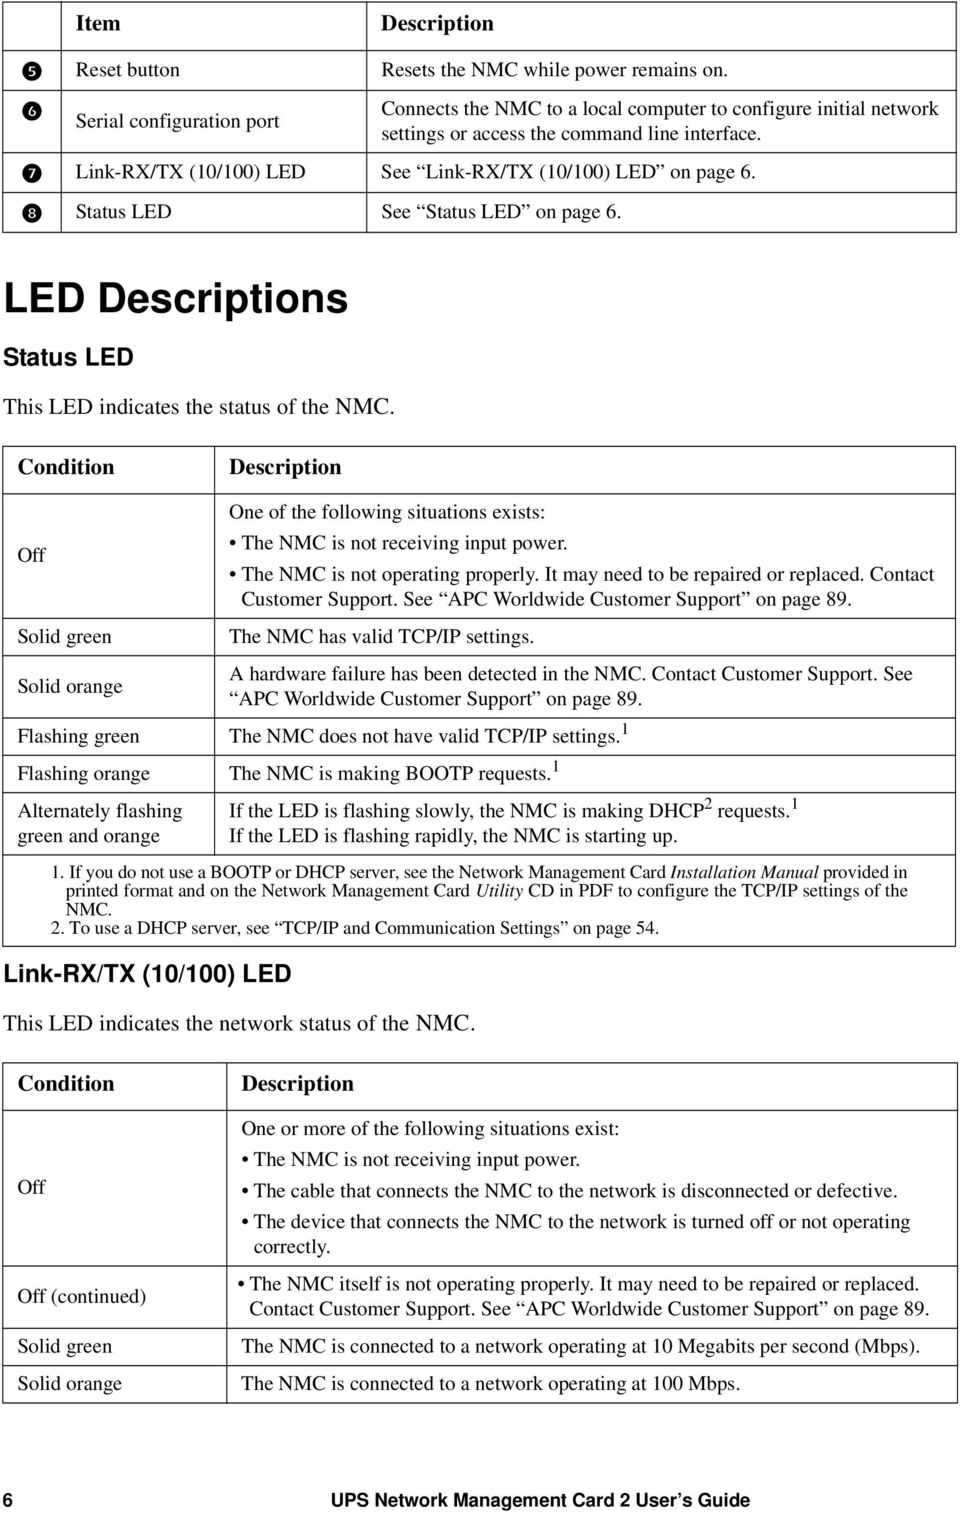 7 8 Link-RX/TX (10/100) LED See Link-RX/TX (10/100) LED on page 6. Status LED See Status LED on page 6. LED Descriptions Status LED This LED indicates the status of the NMC.